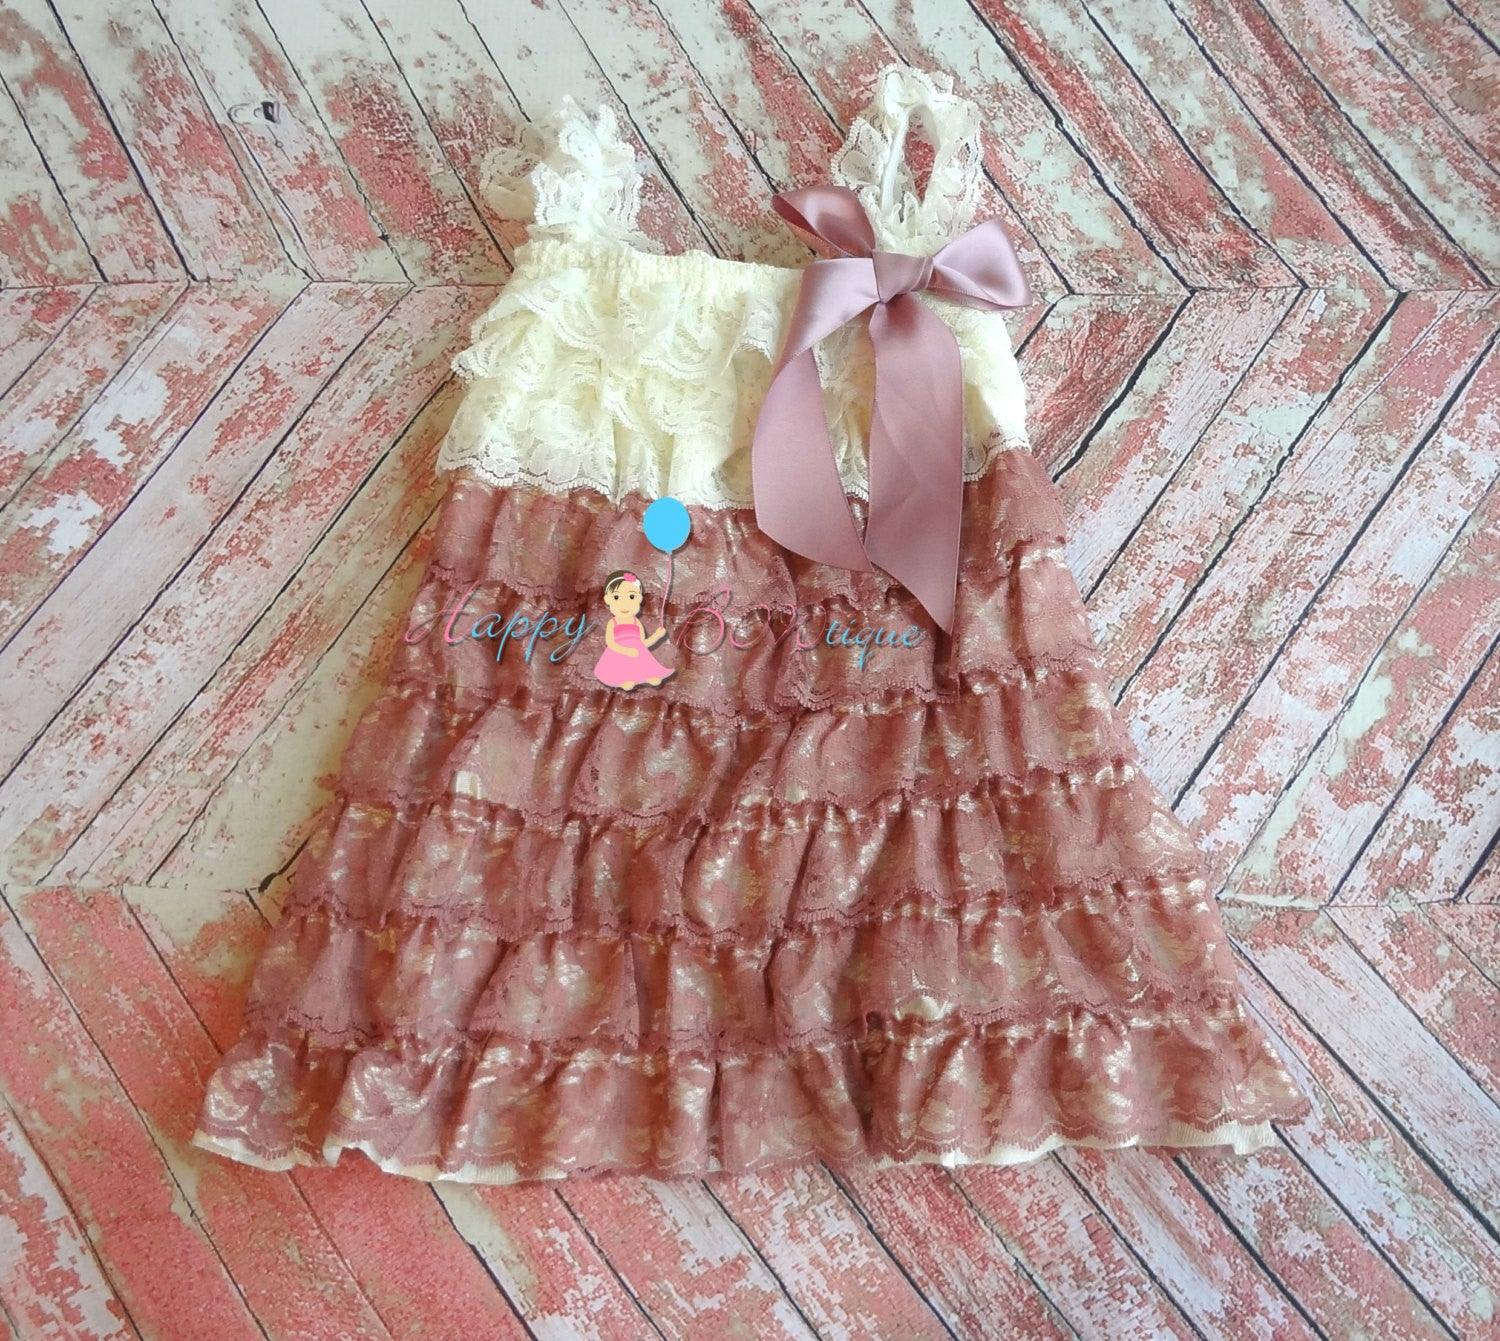 Dusty Champagne Rose Ivory Lace Dress set - Happy BOWtique - children's clothing, Baby Girl clothing